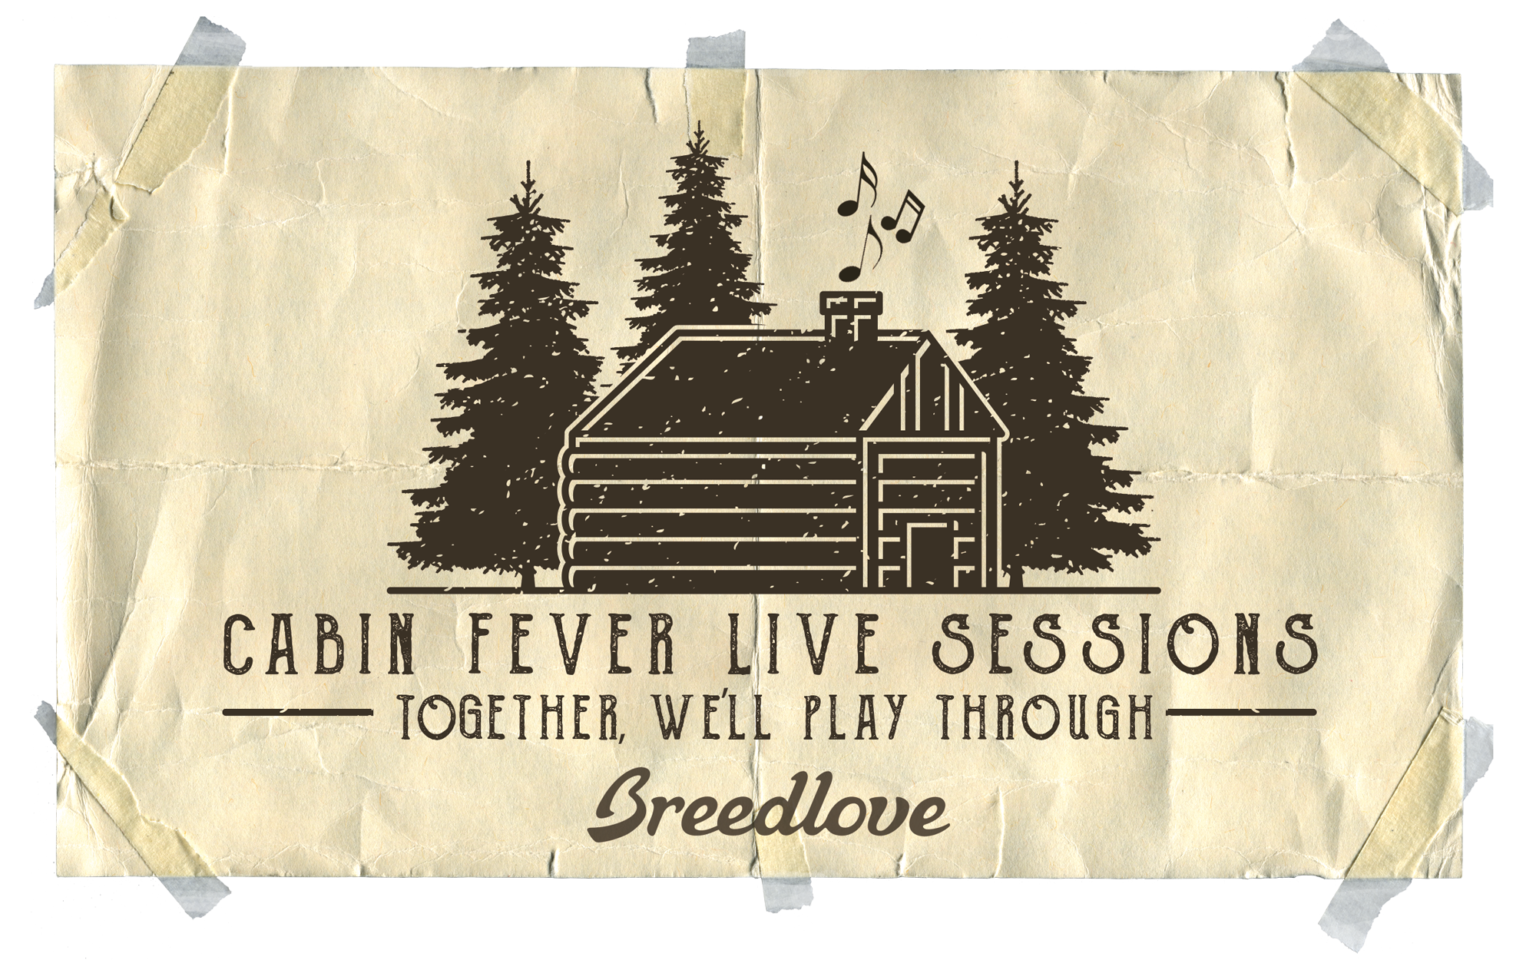 CABIN FEVER LIVE SESSIONS: Breedlove Takeover